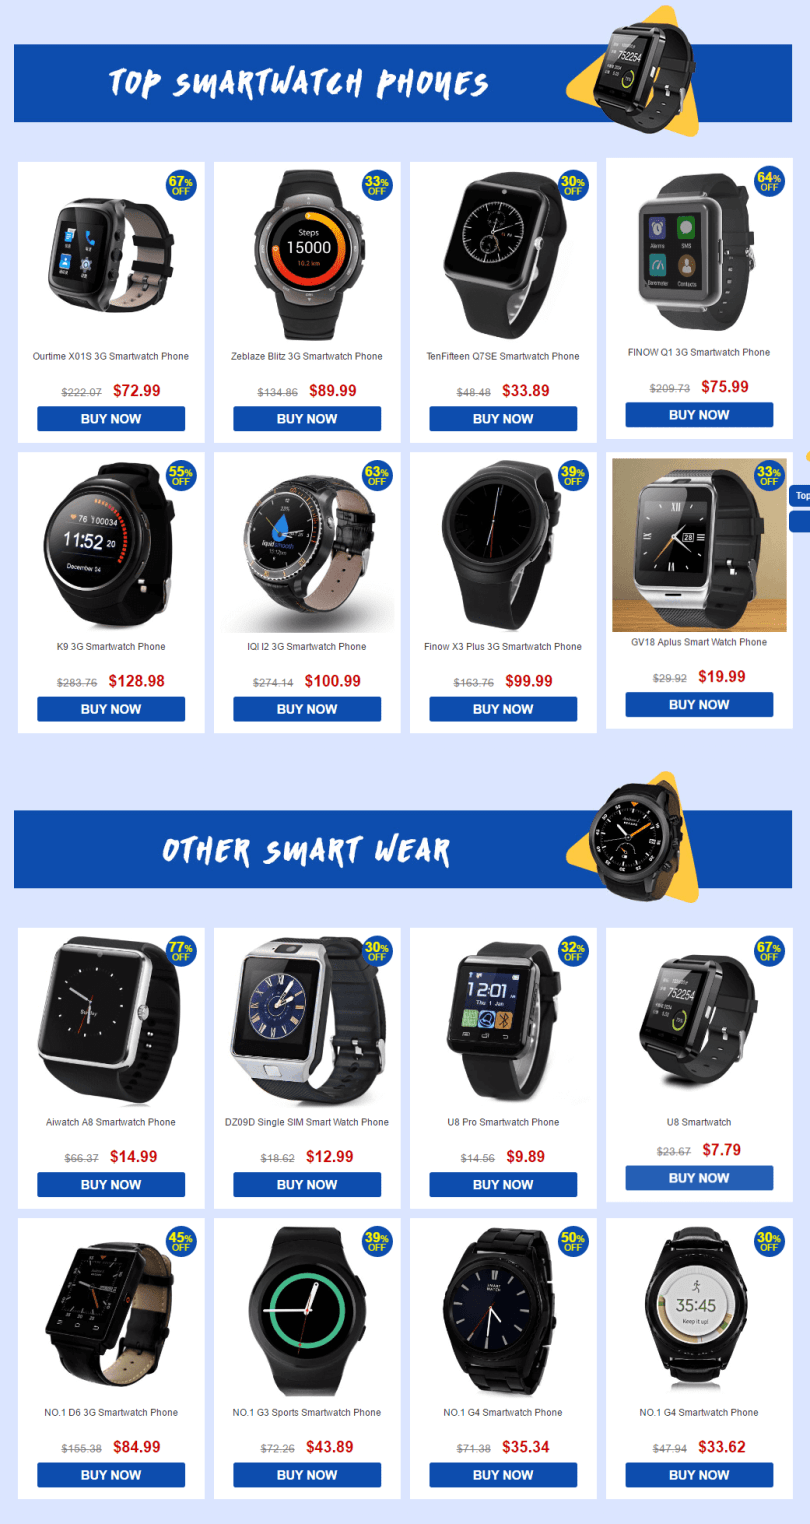 the-biggest-smartwatch-phone-sale-products-list